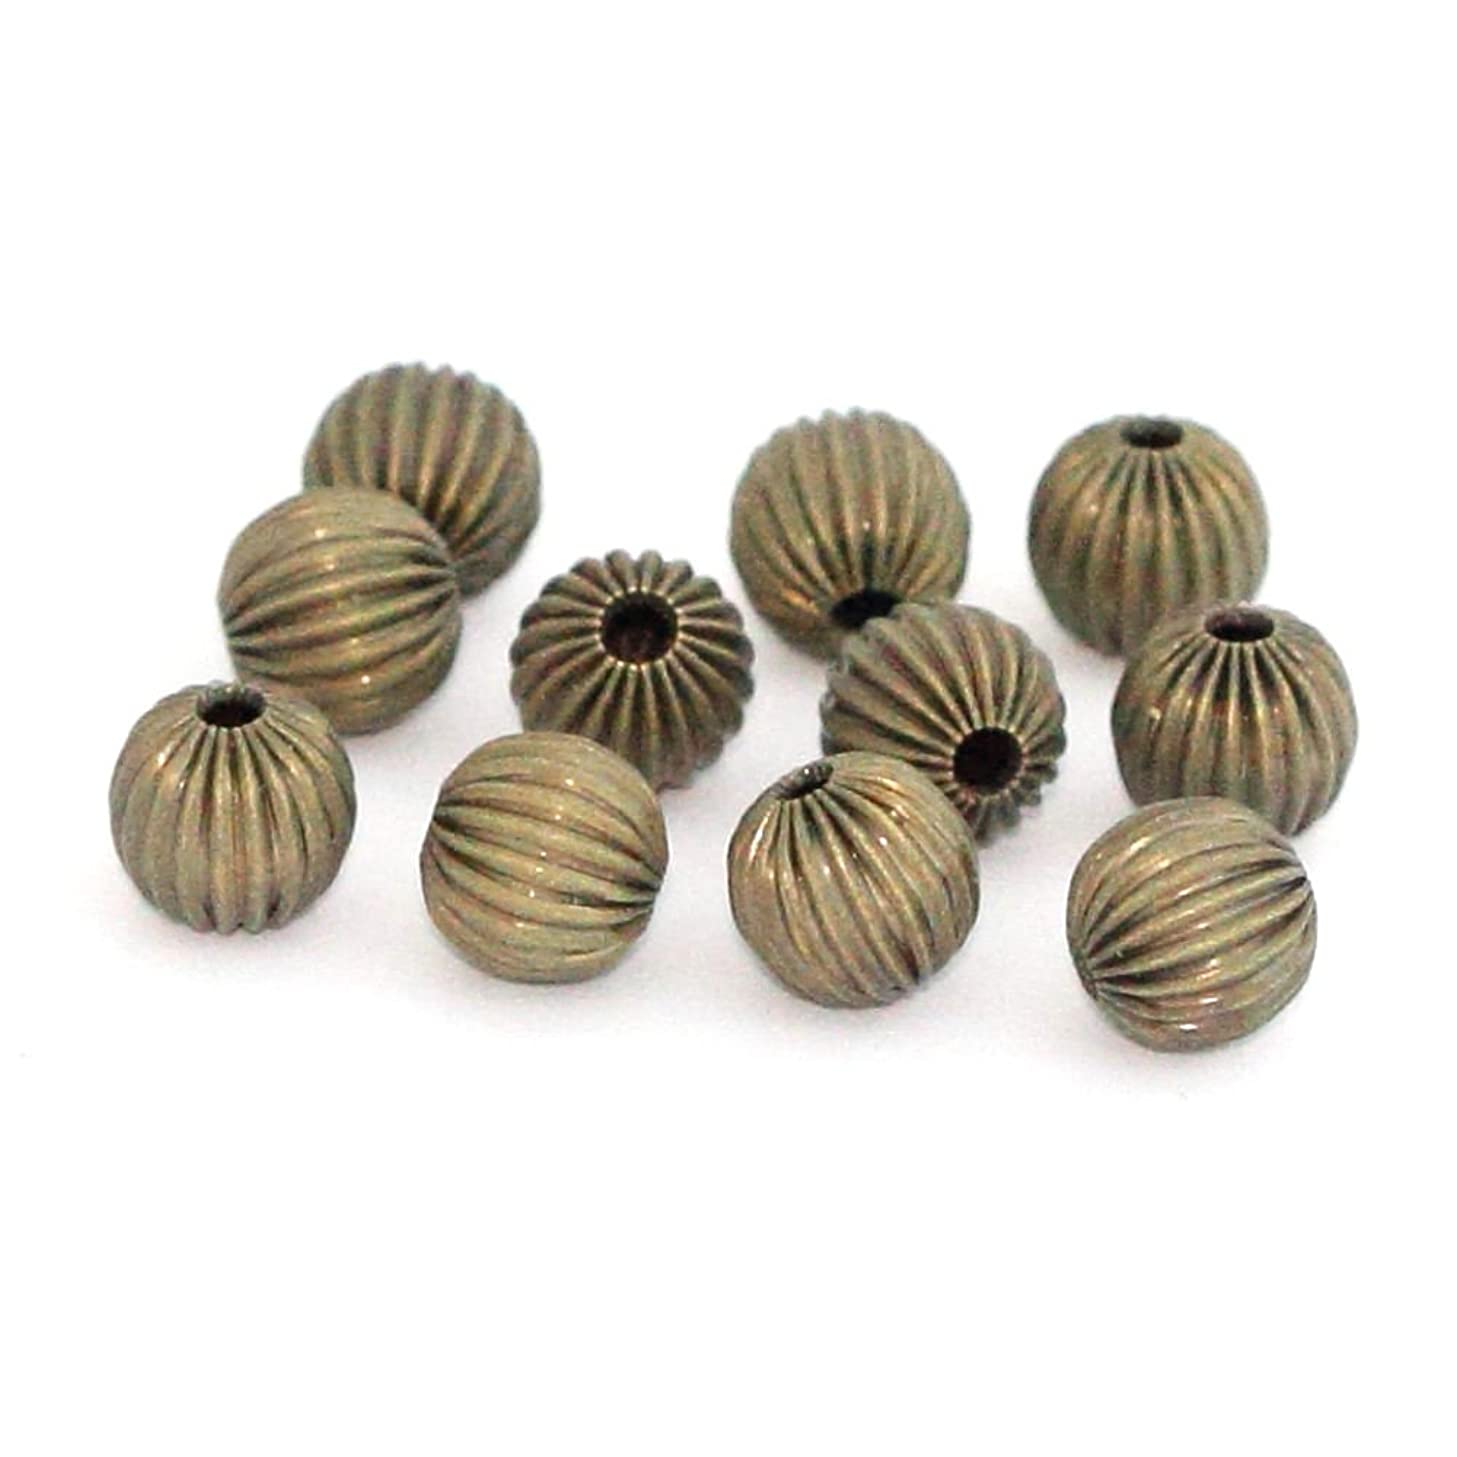 200pcs Beautiful Mellon Spacers 6mm Loose Round Metal Bead Antique Bronze Plated Brass for Jewelry Craft Making CF117-6